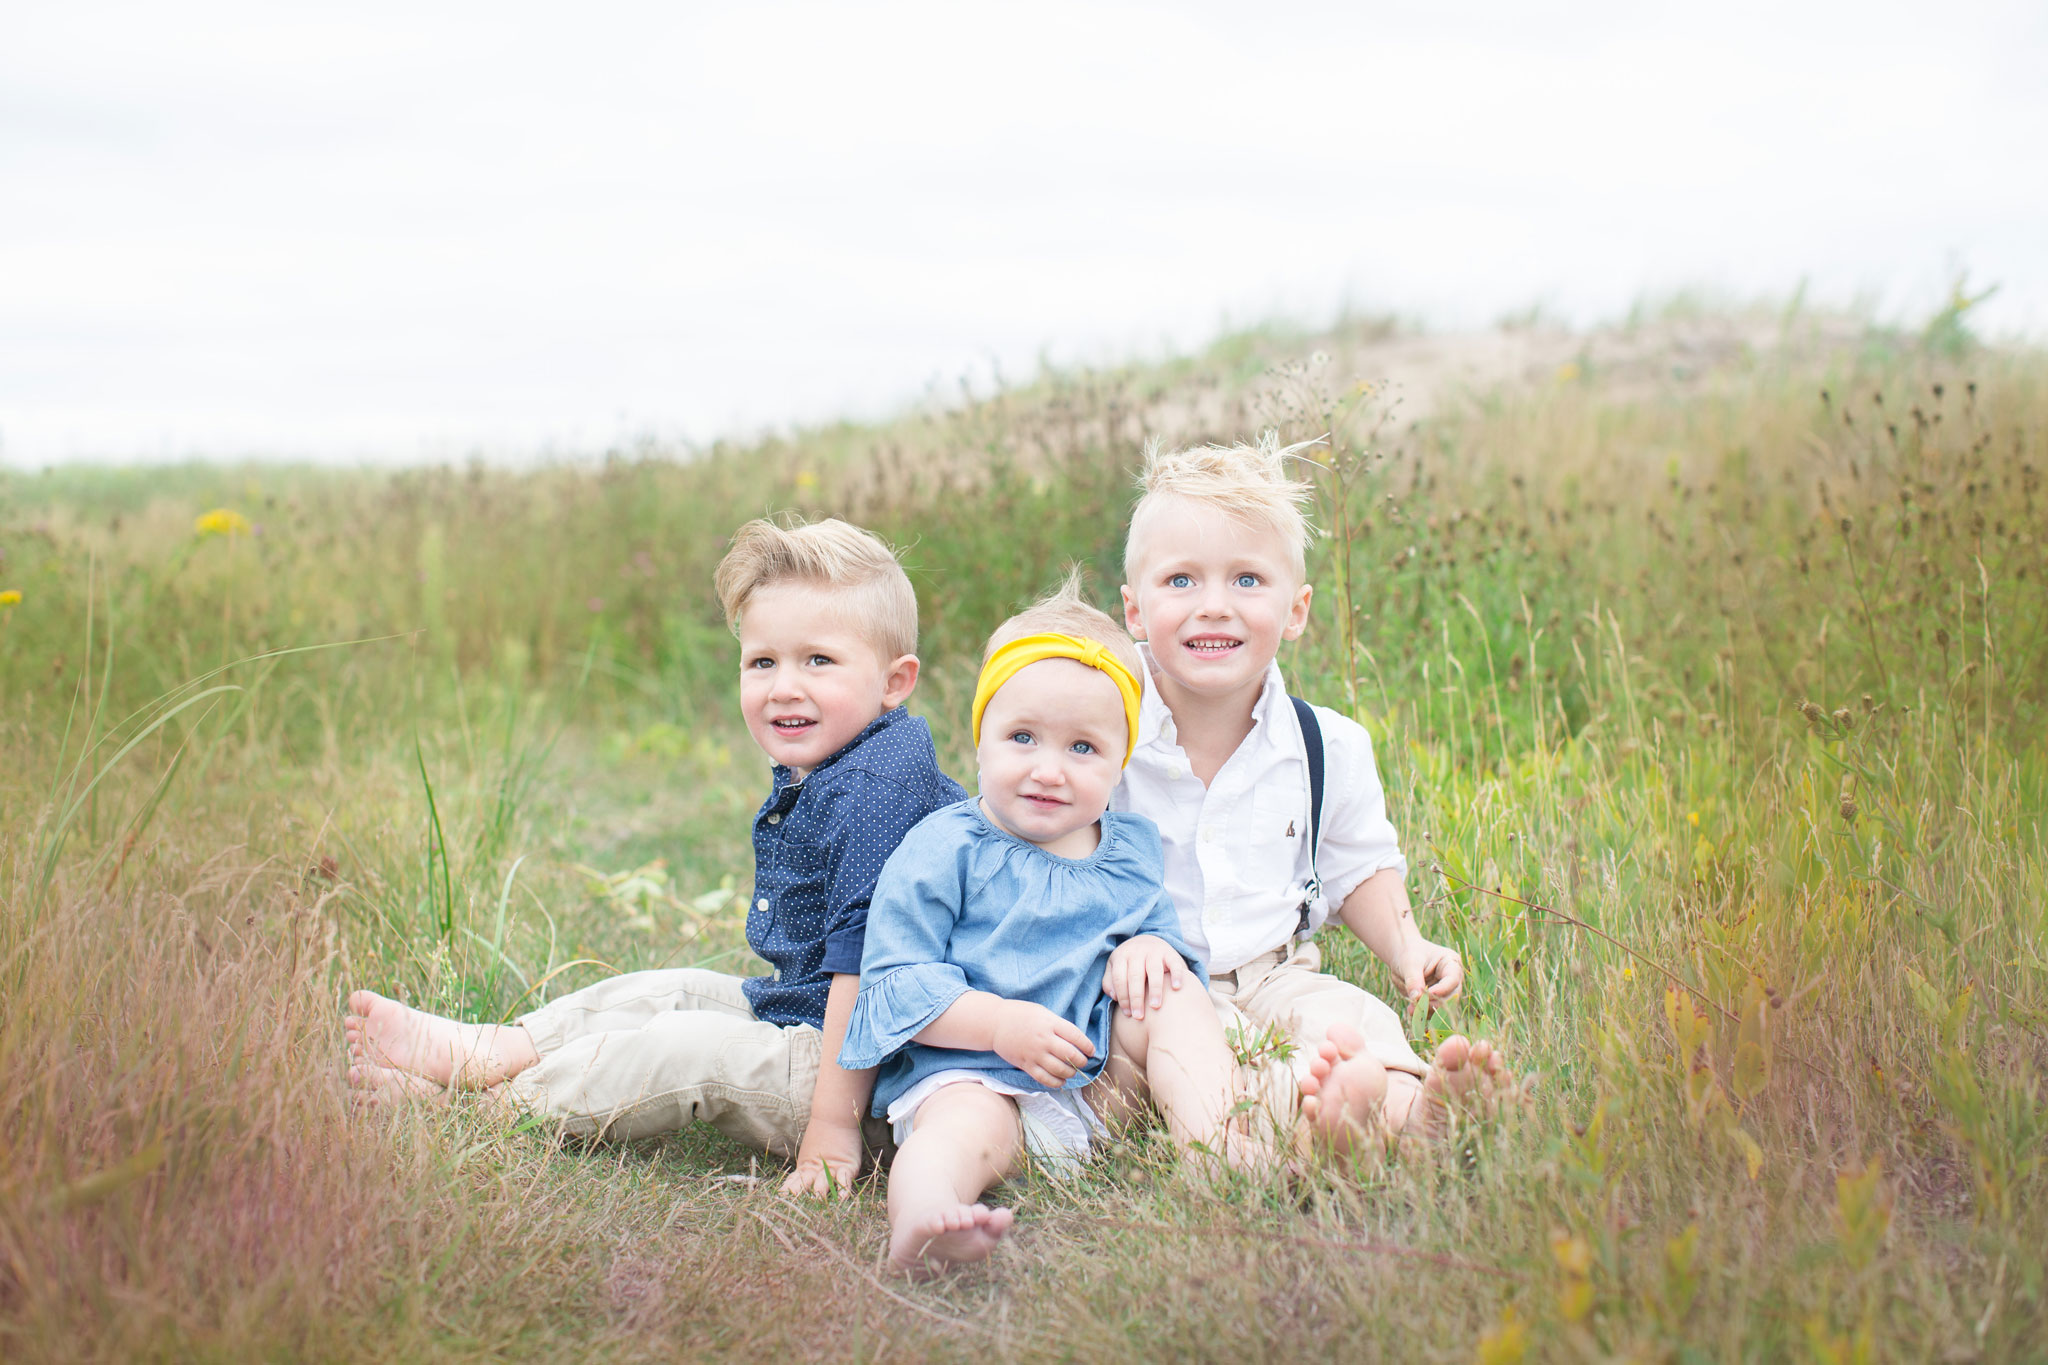 Three children sitting in the field of grass